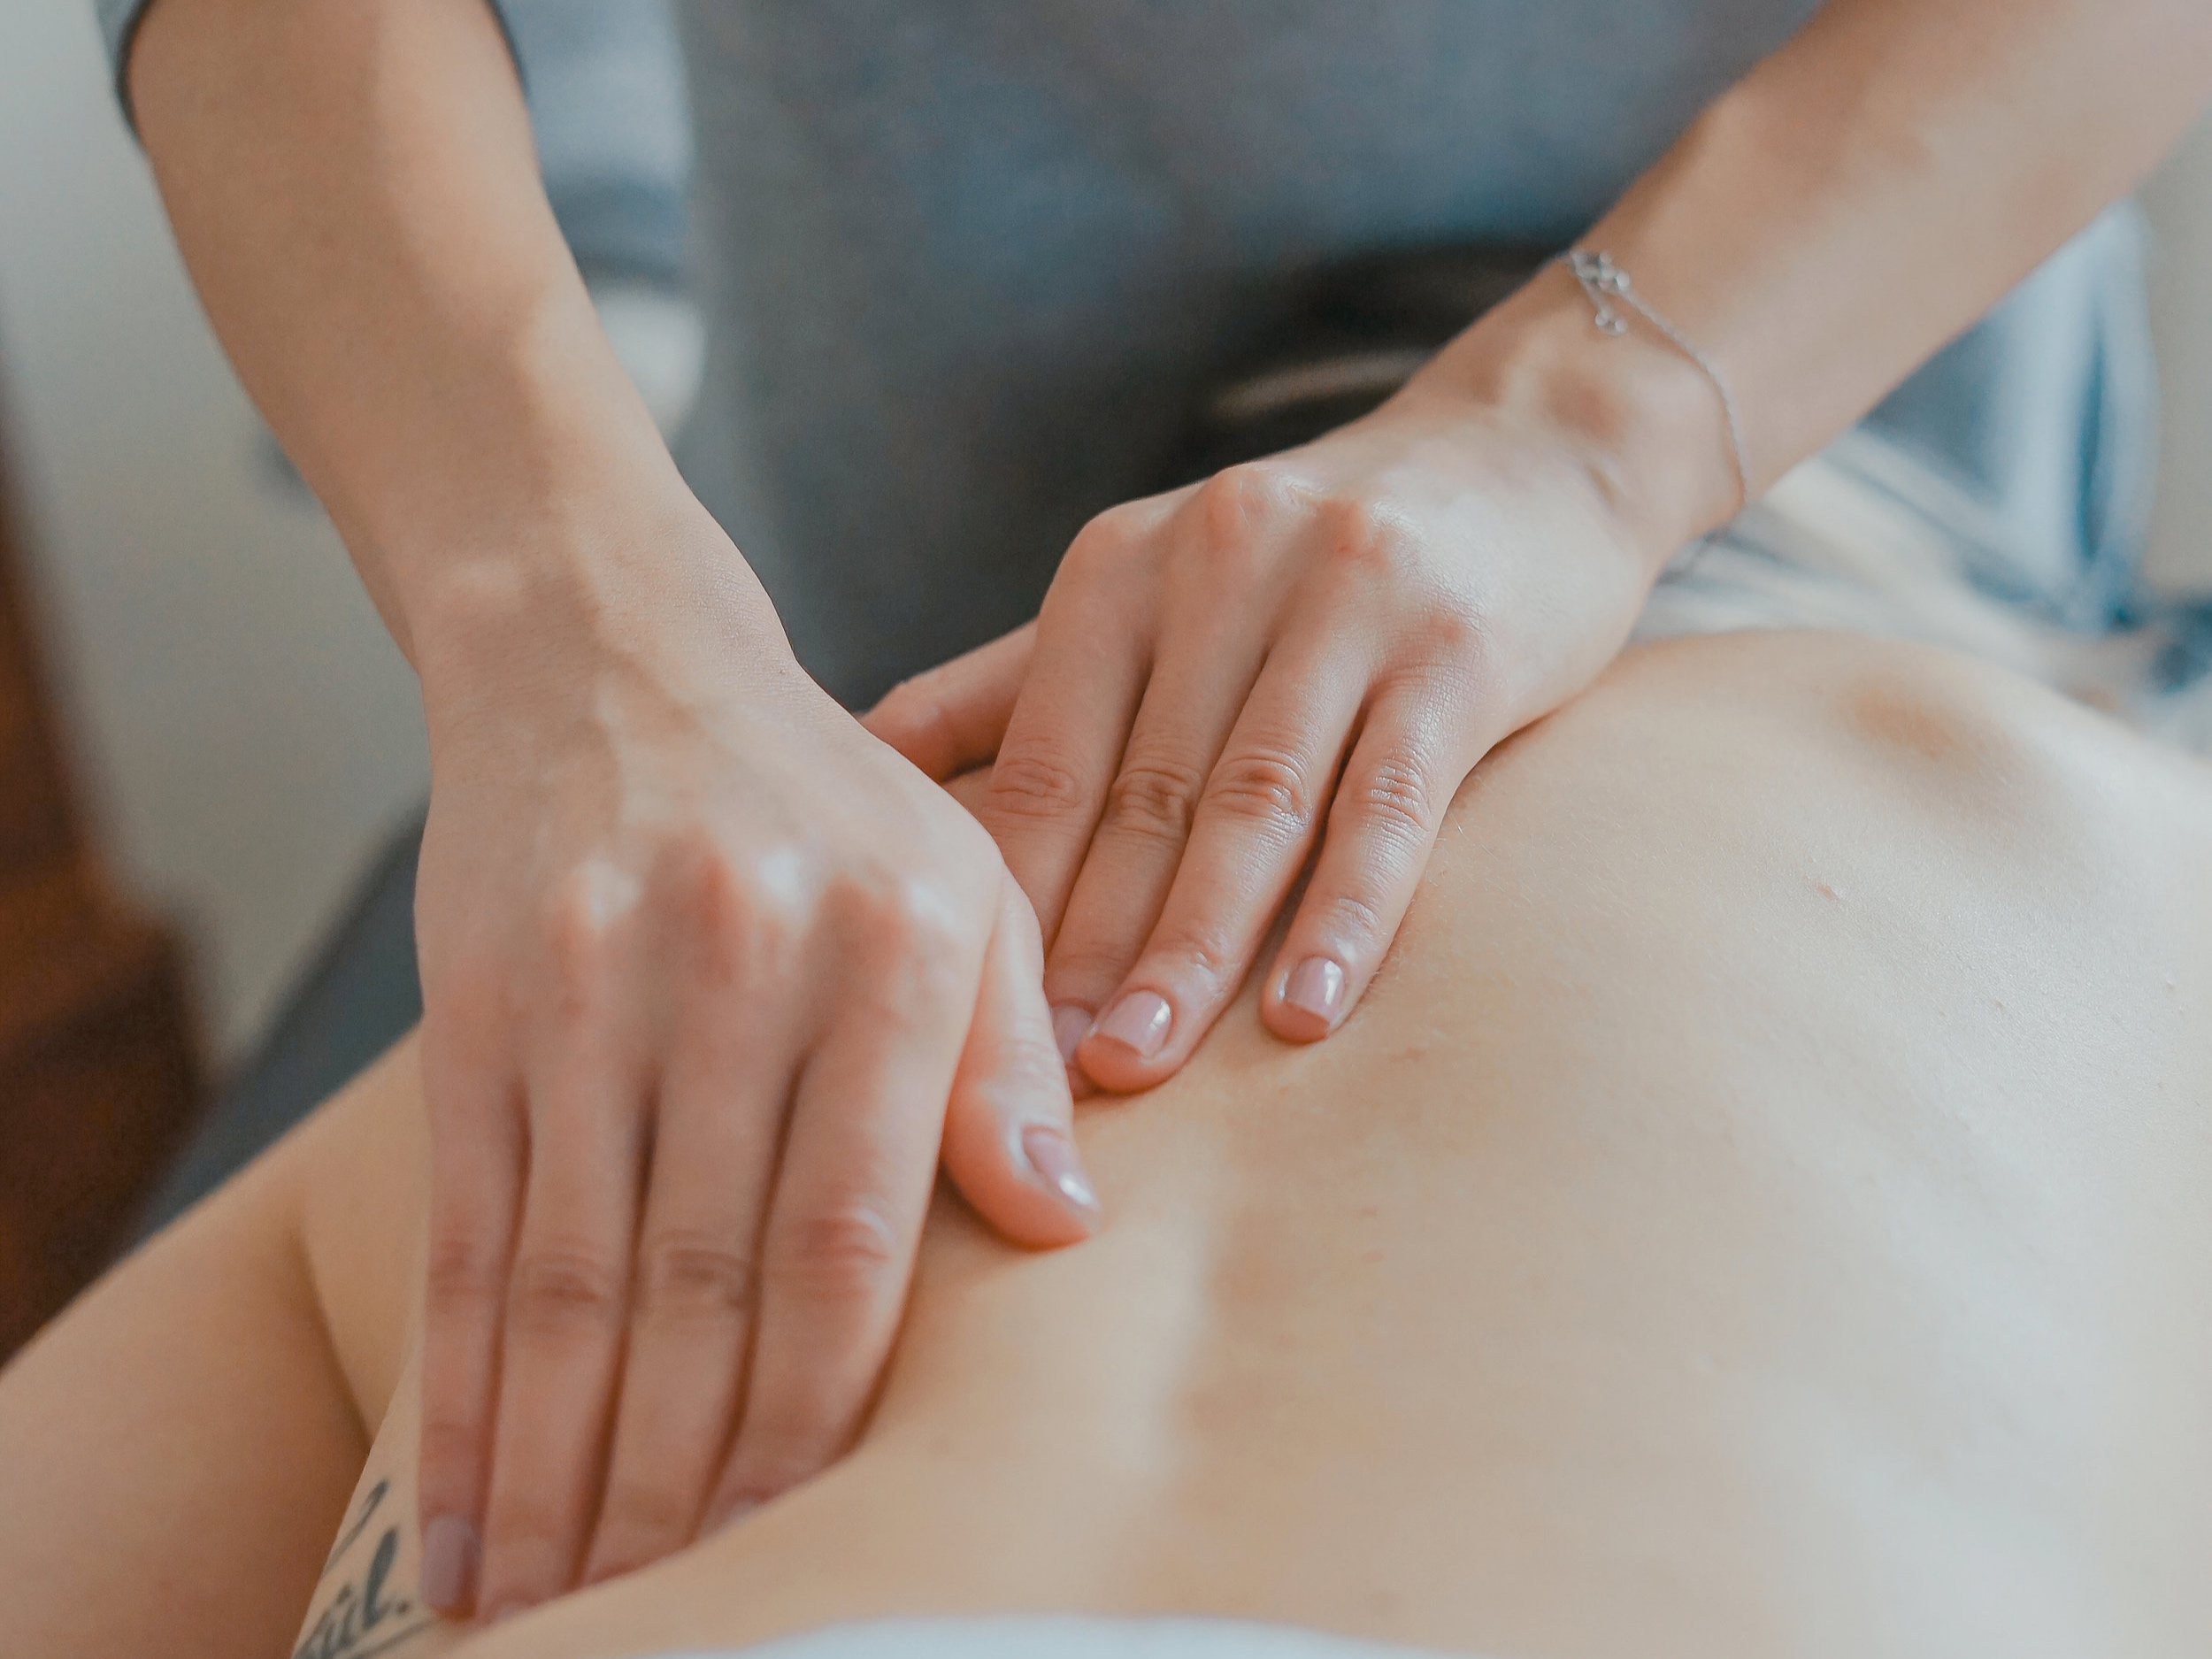 Take Action - Learn about how Thrive Acupuncture & Wellness can transform your path to wellness by scheduling a complementary consultation today.